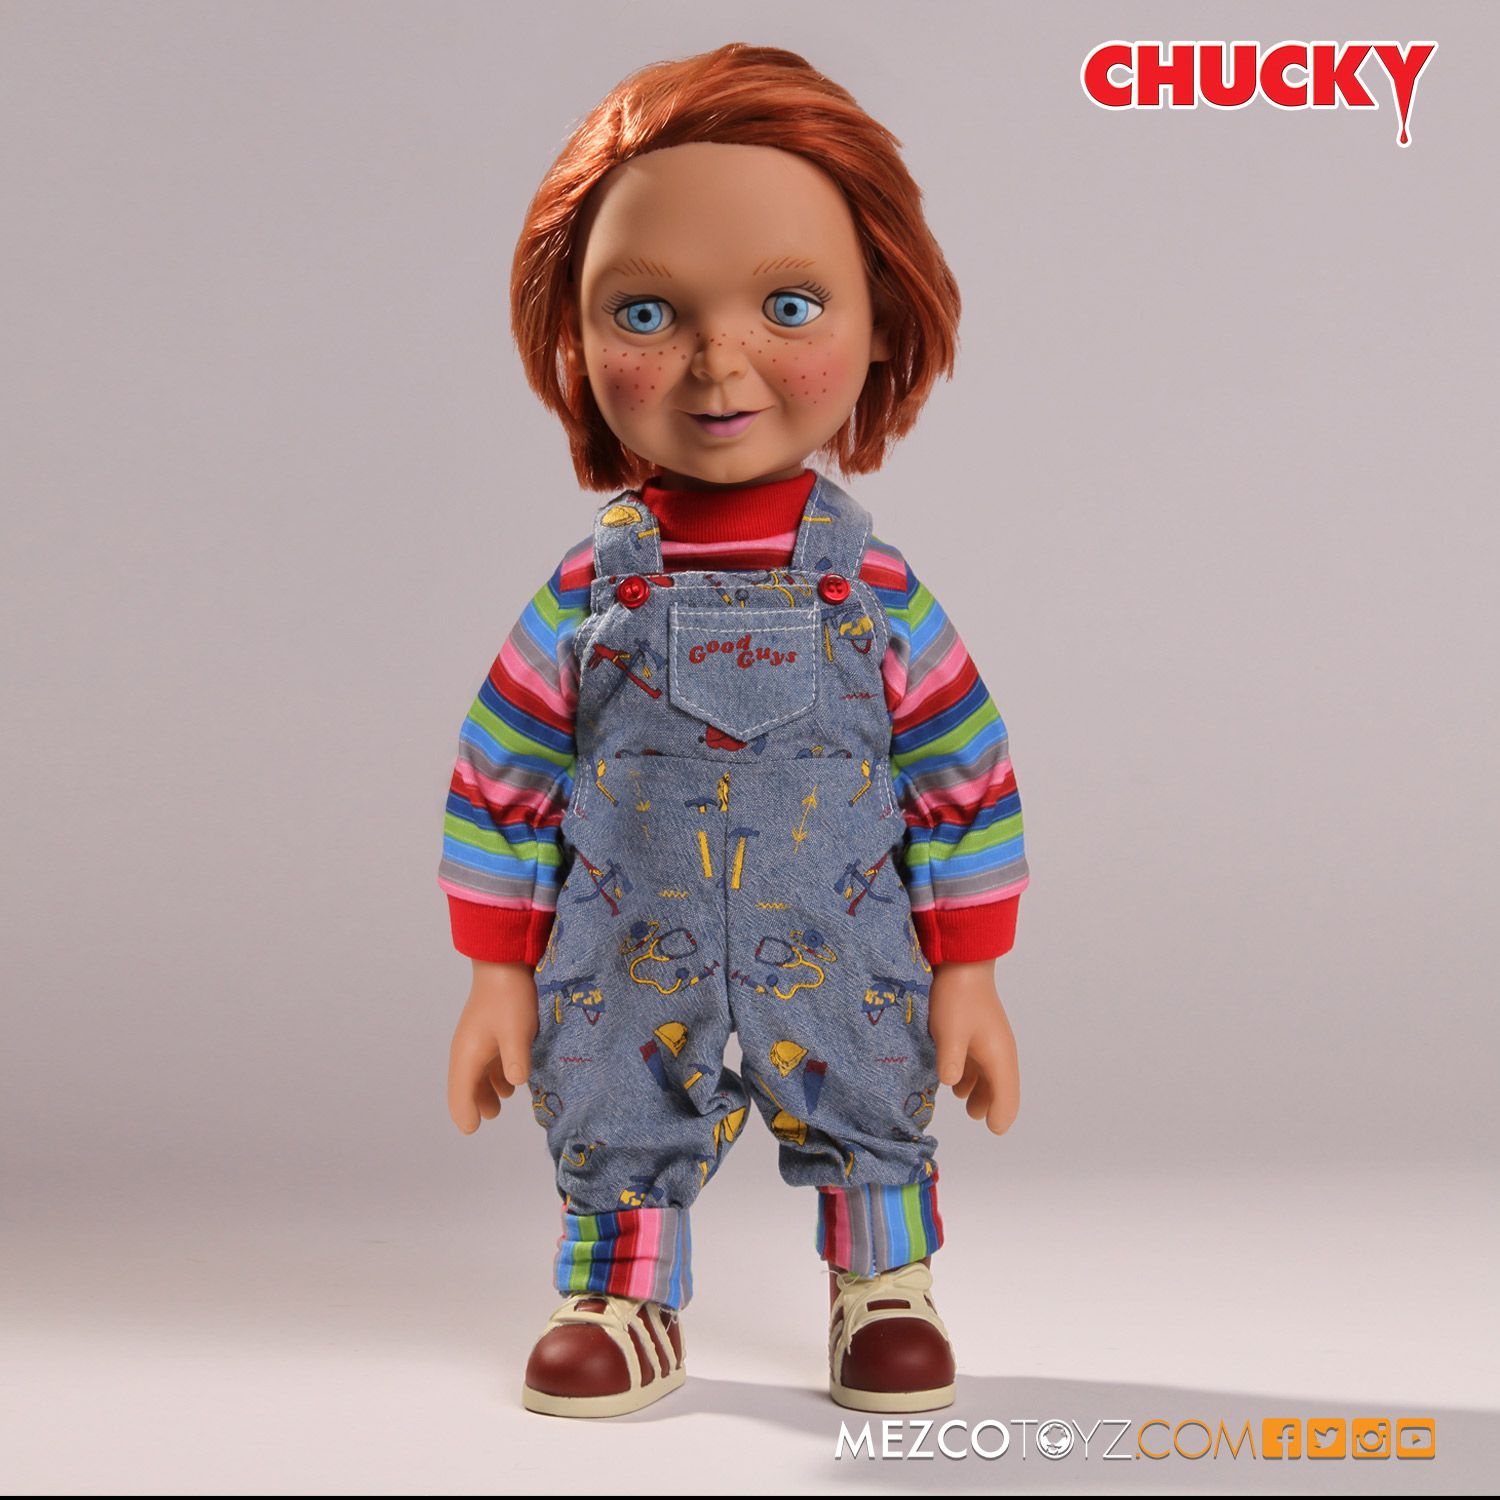 child play Chucky is a killer good guy doll, that had his soul transferred into the doll by using voodoo despite his small size, chucky has the strength of a full grown man on.